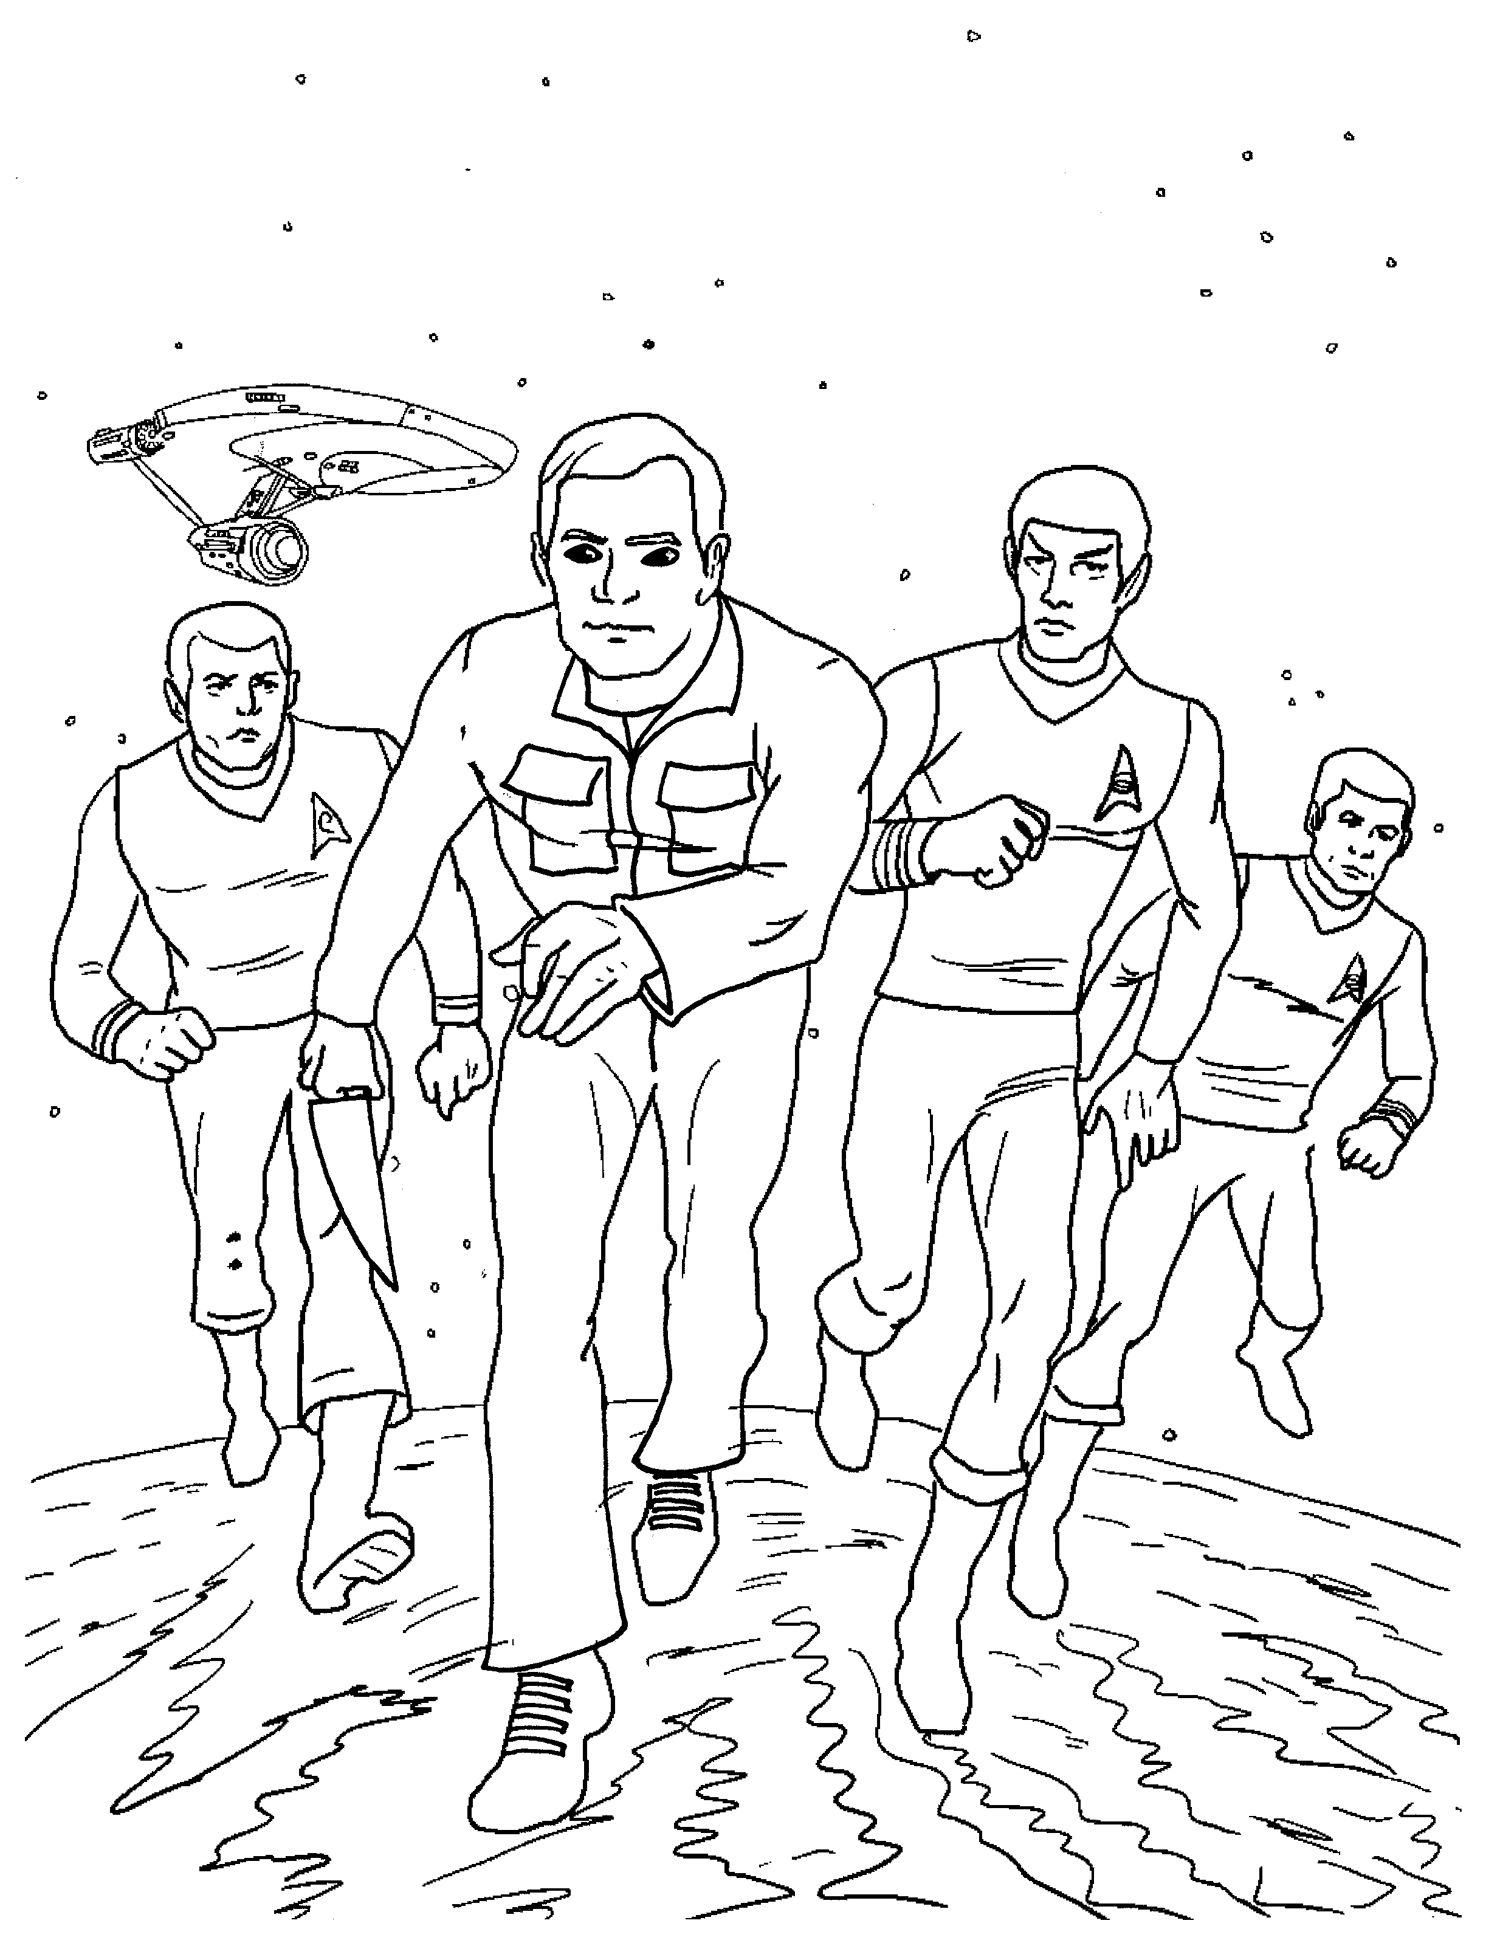 Captain Kirk Michael Myers Star Wars Characters Coloring Books Star Trek Party